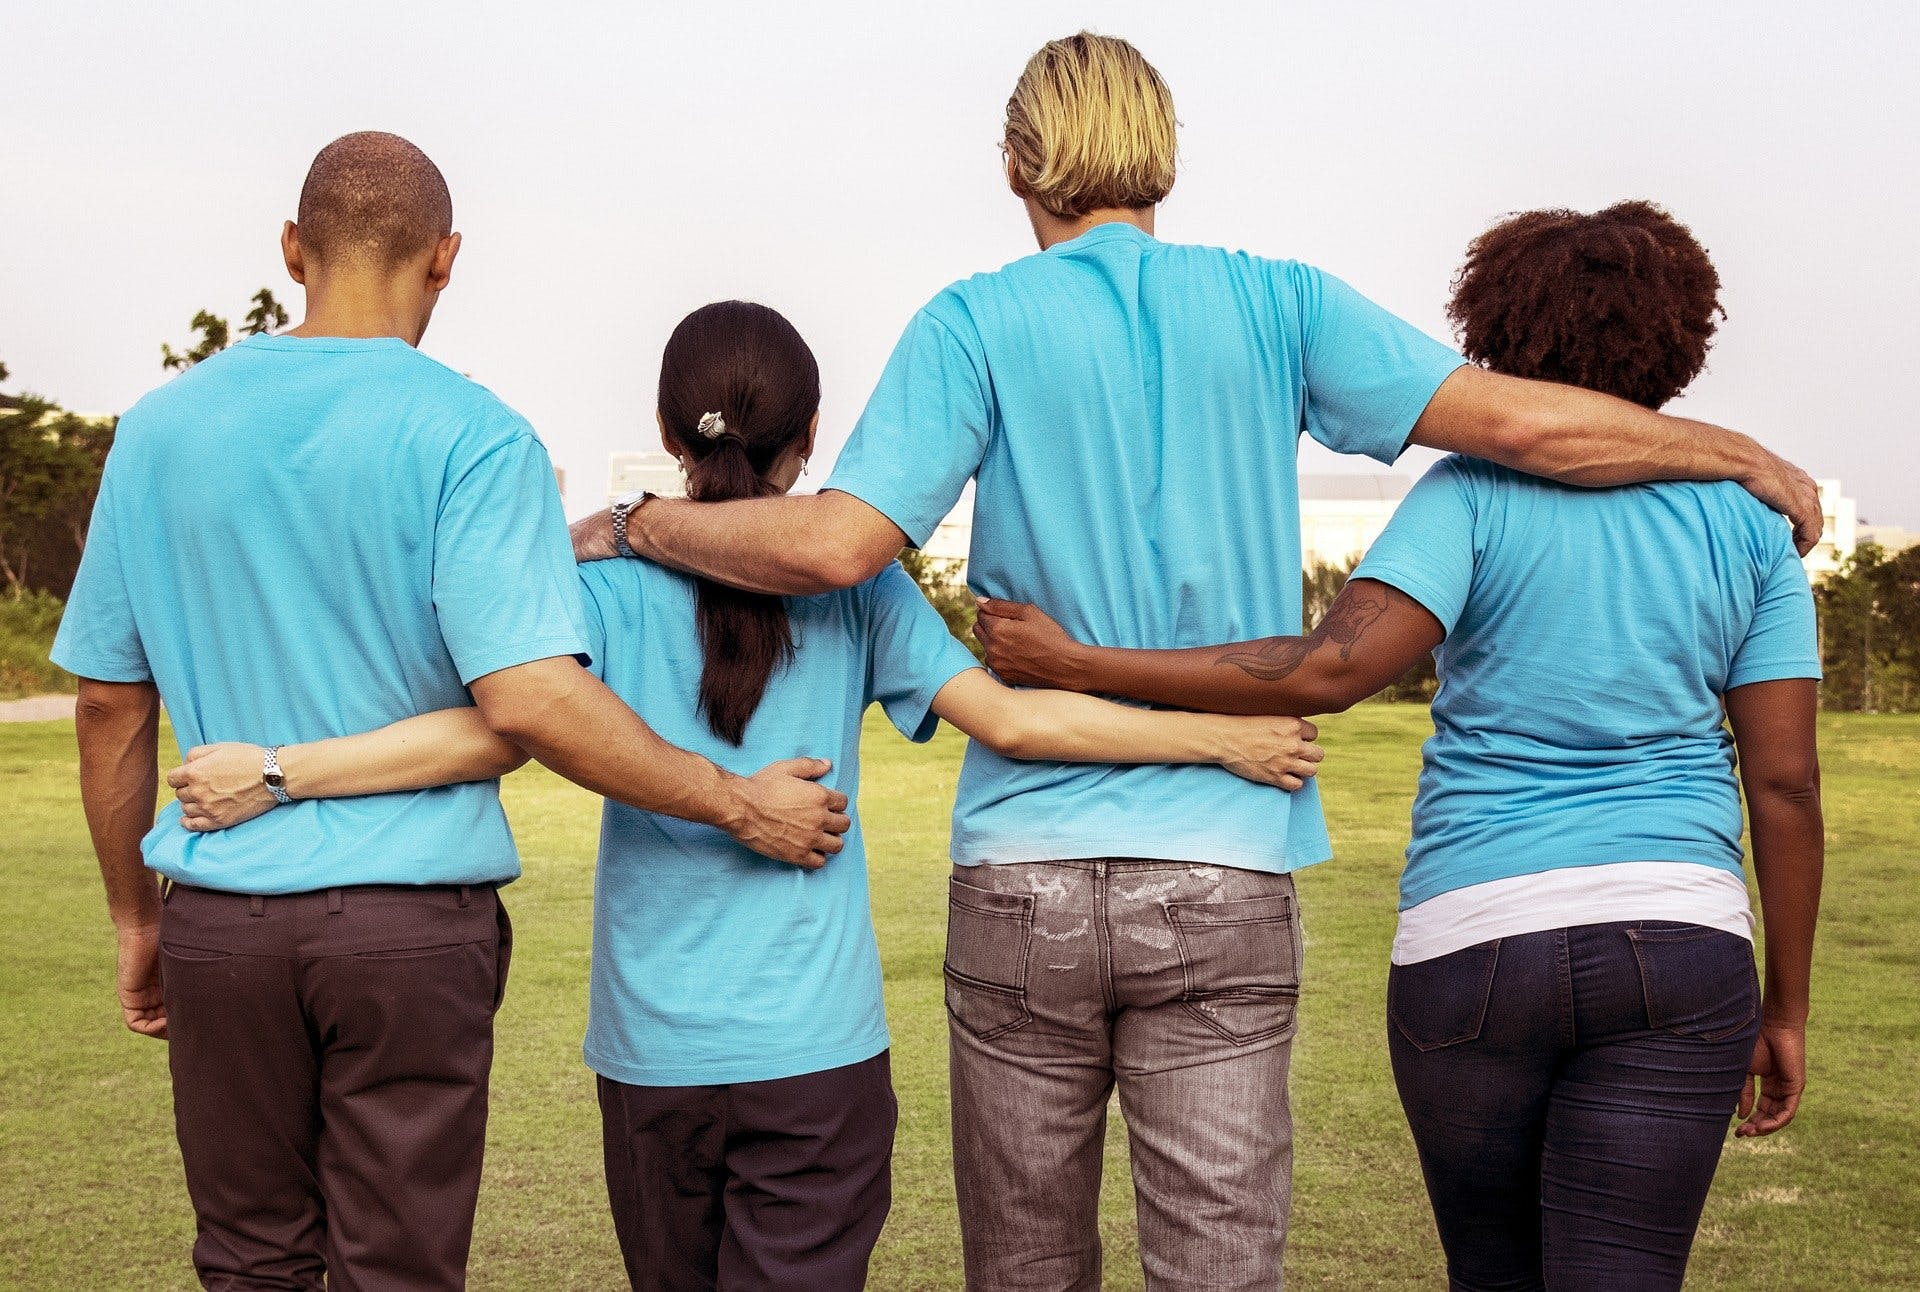 Team of four individuals side by side with arms around each other in support